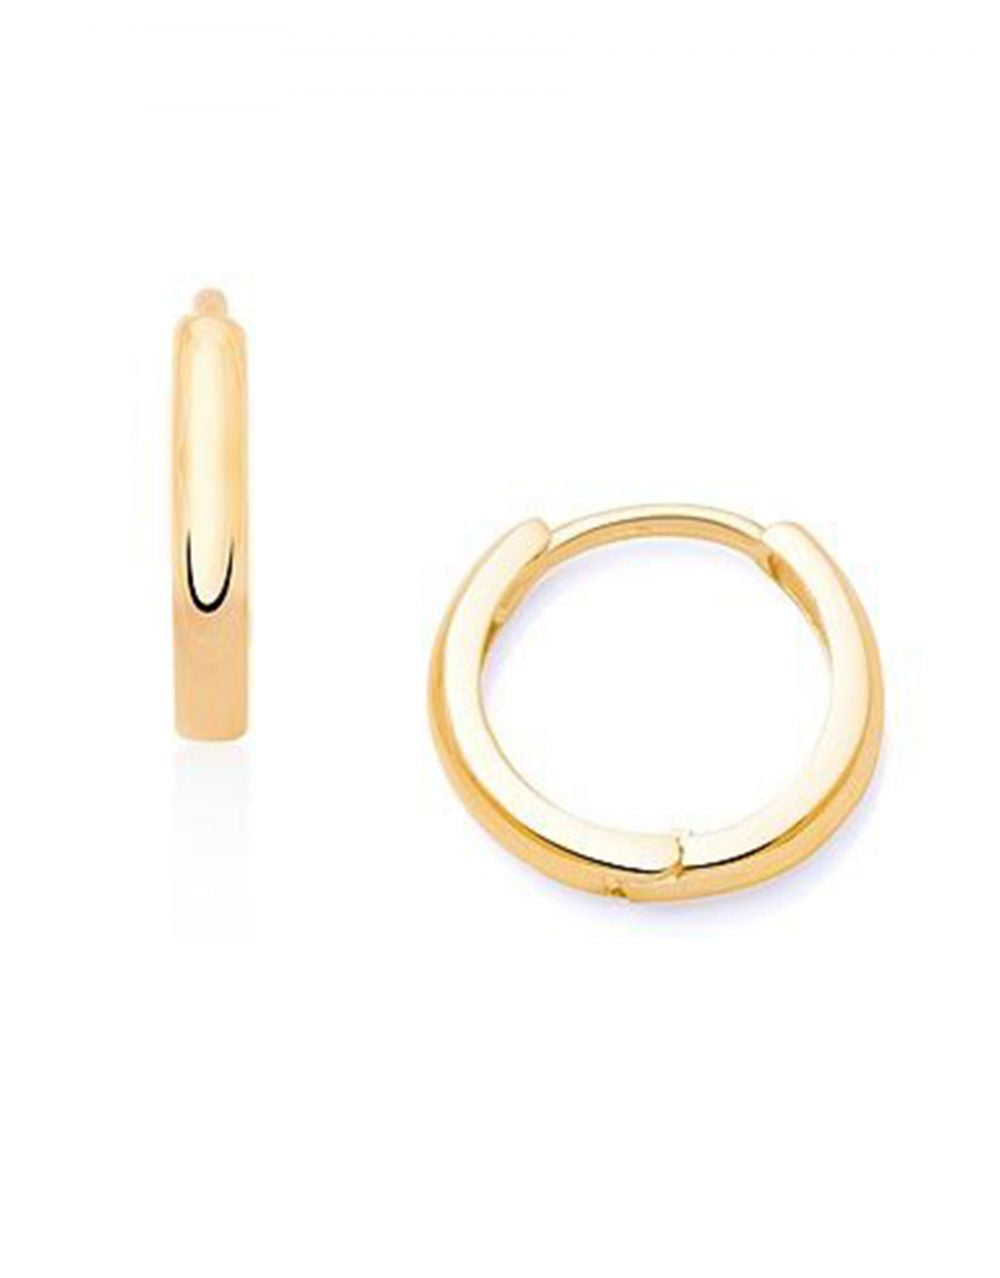 Mini Gold Hoops<br /><i><small>14K Yellow Gold</small></i><br />